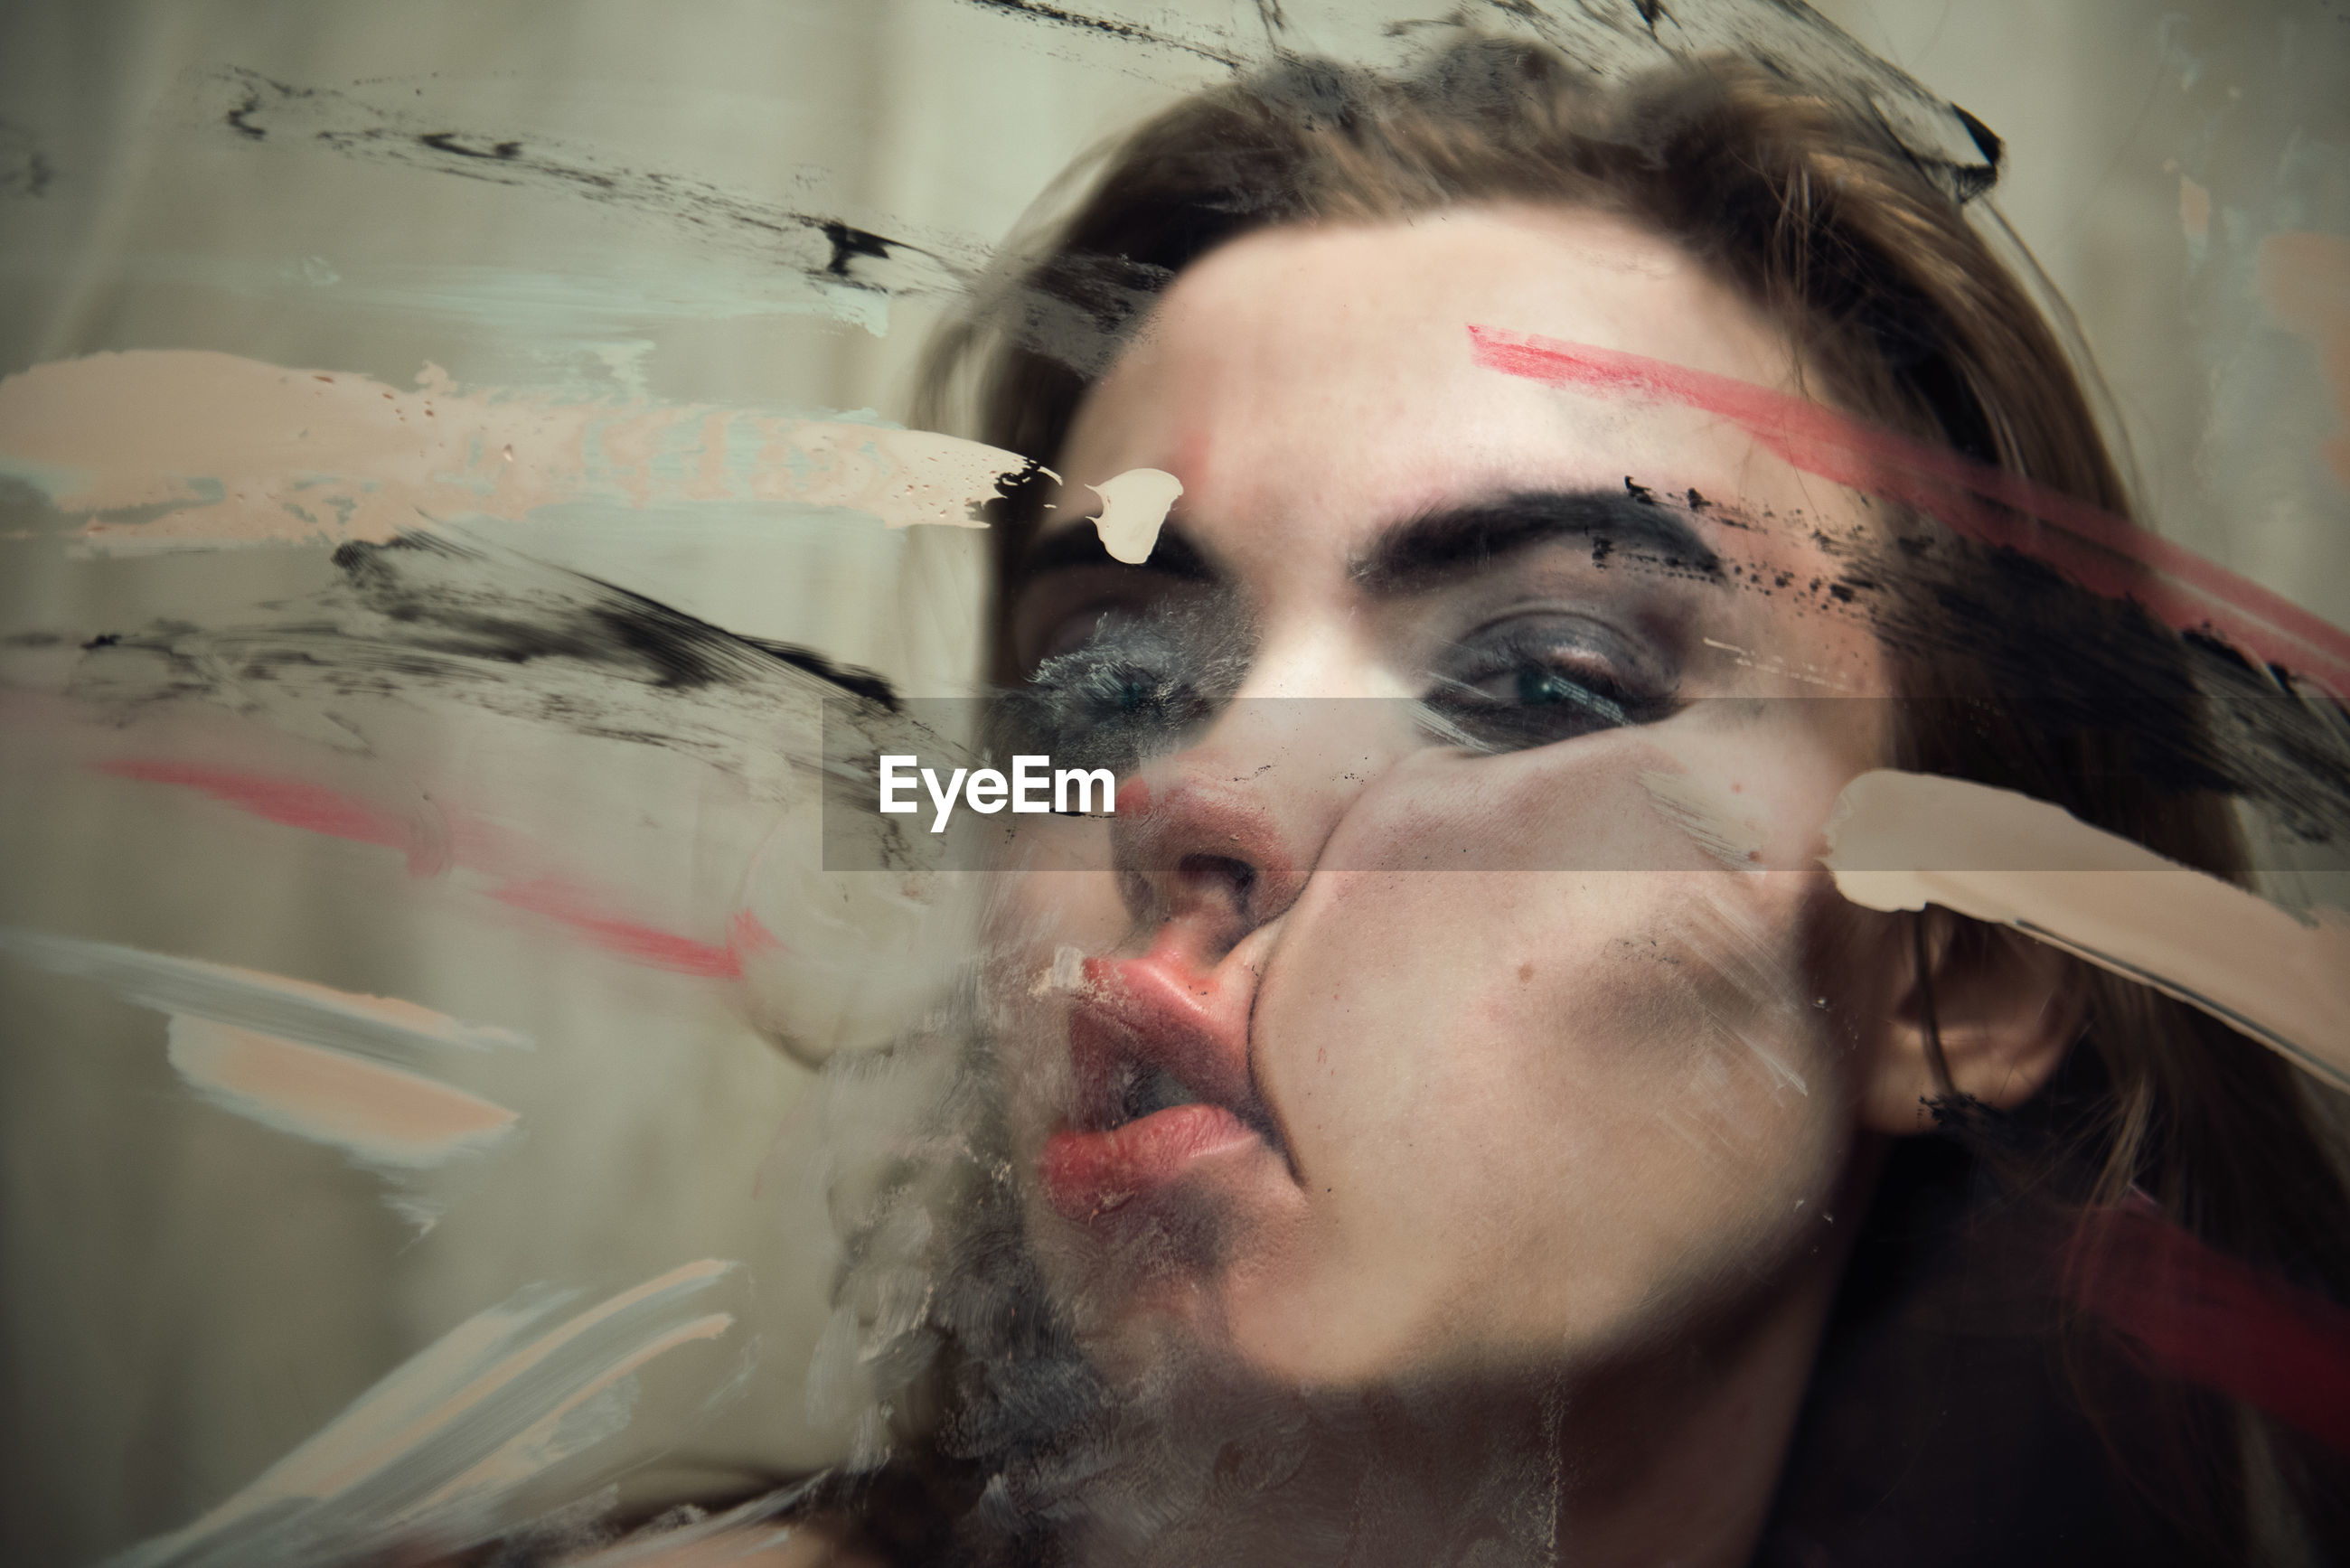 Close-up portrait of woman pressing her face on glass window